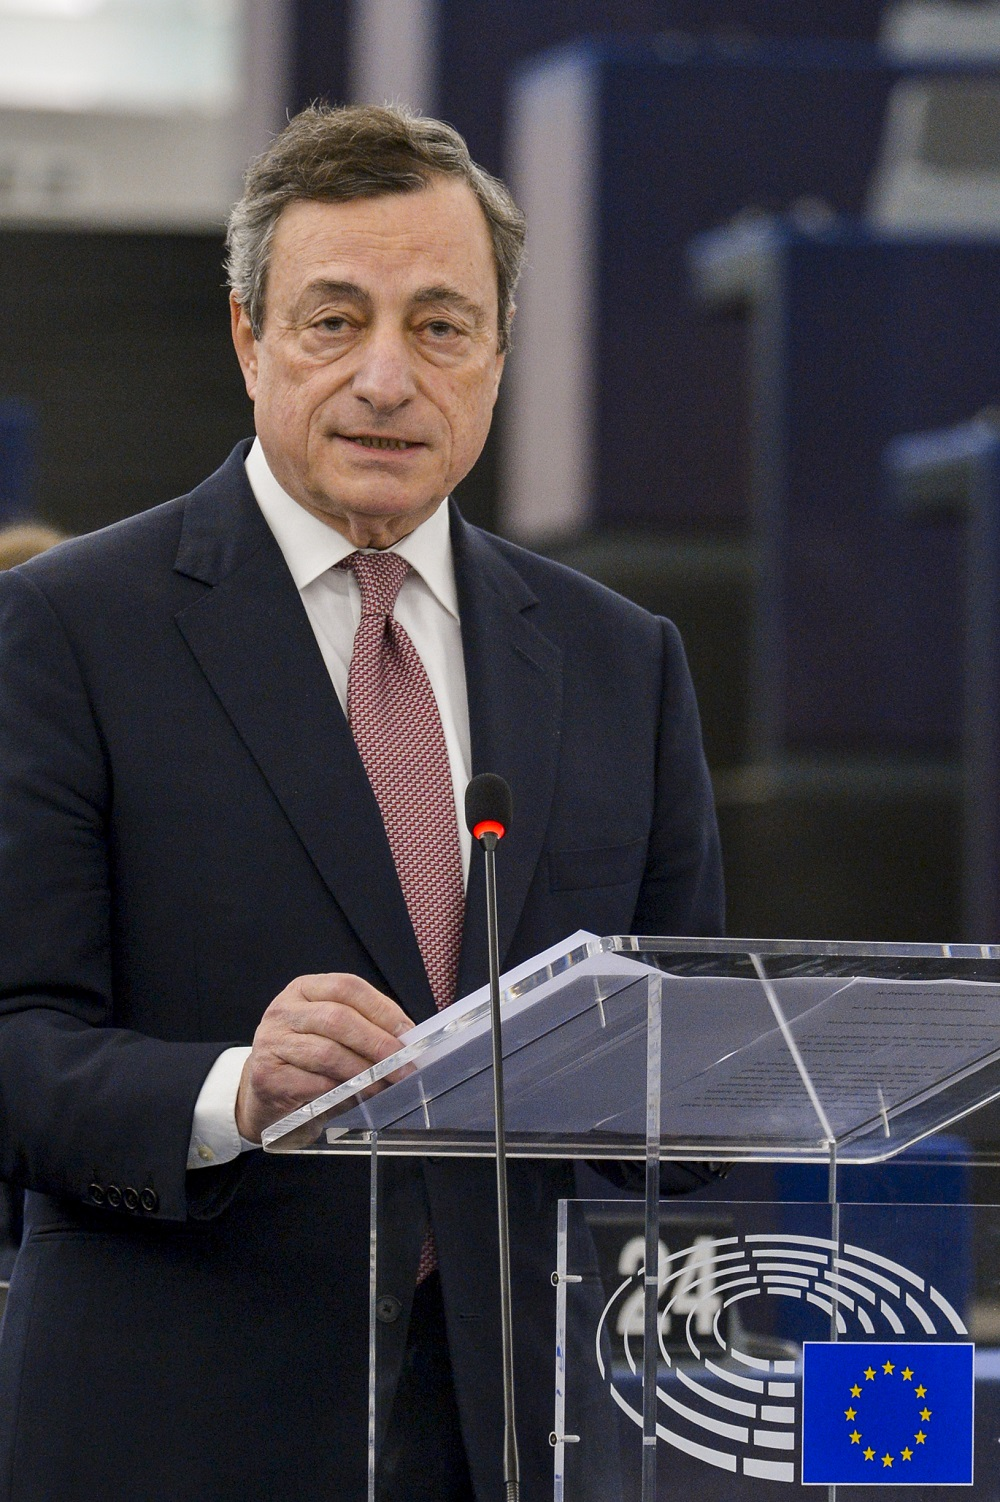 Appointment of the President of the ECB